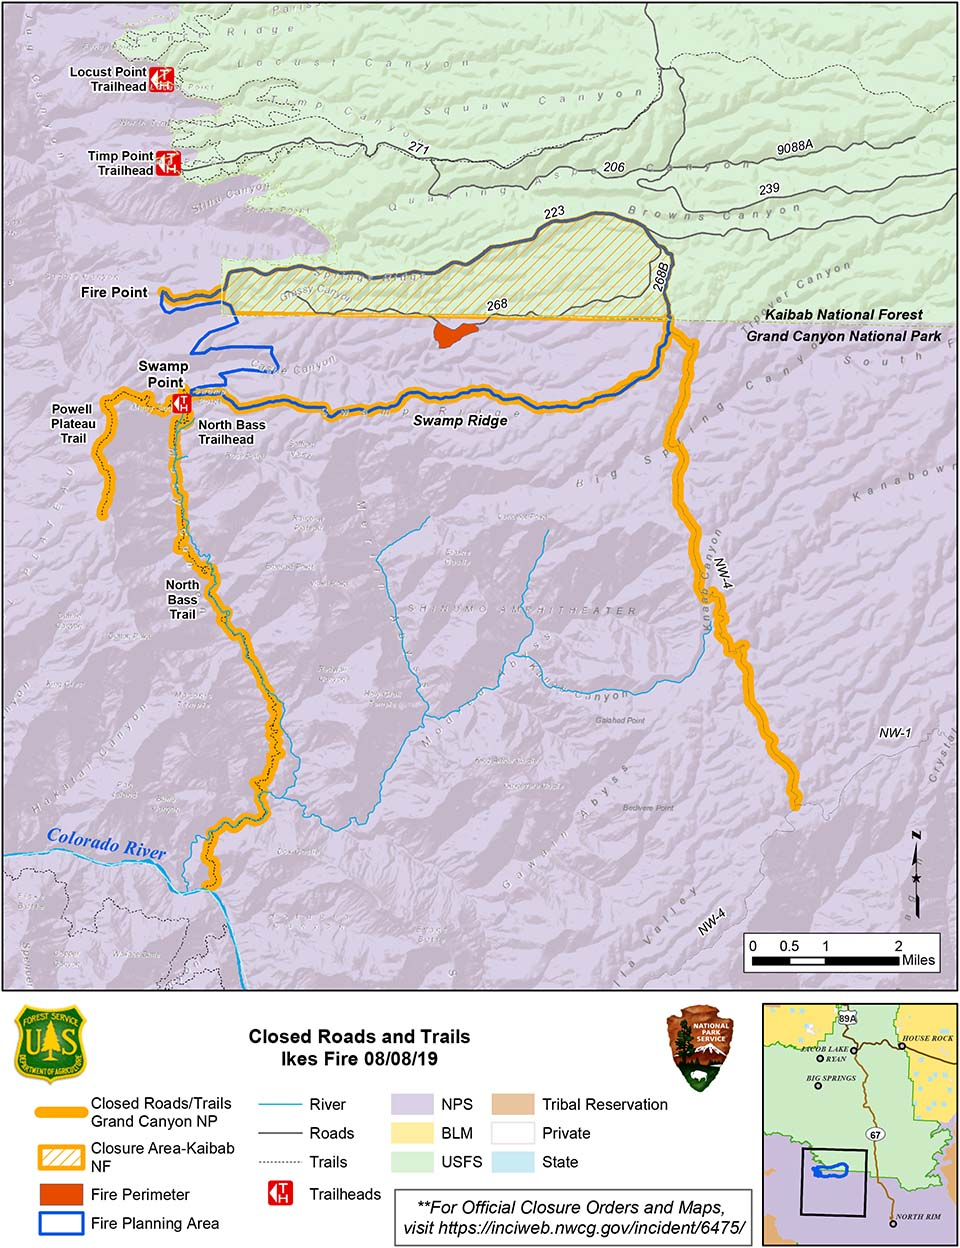 map showing the Ikes Fire containment and closure area in relation to the north side of Grand Canyon National Park in its boundary with Kaibab Nat. Forest